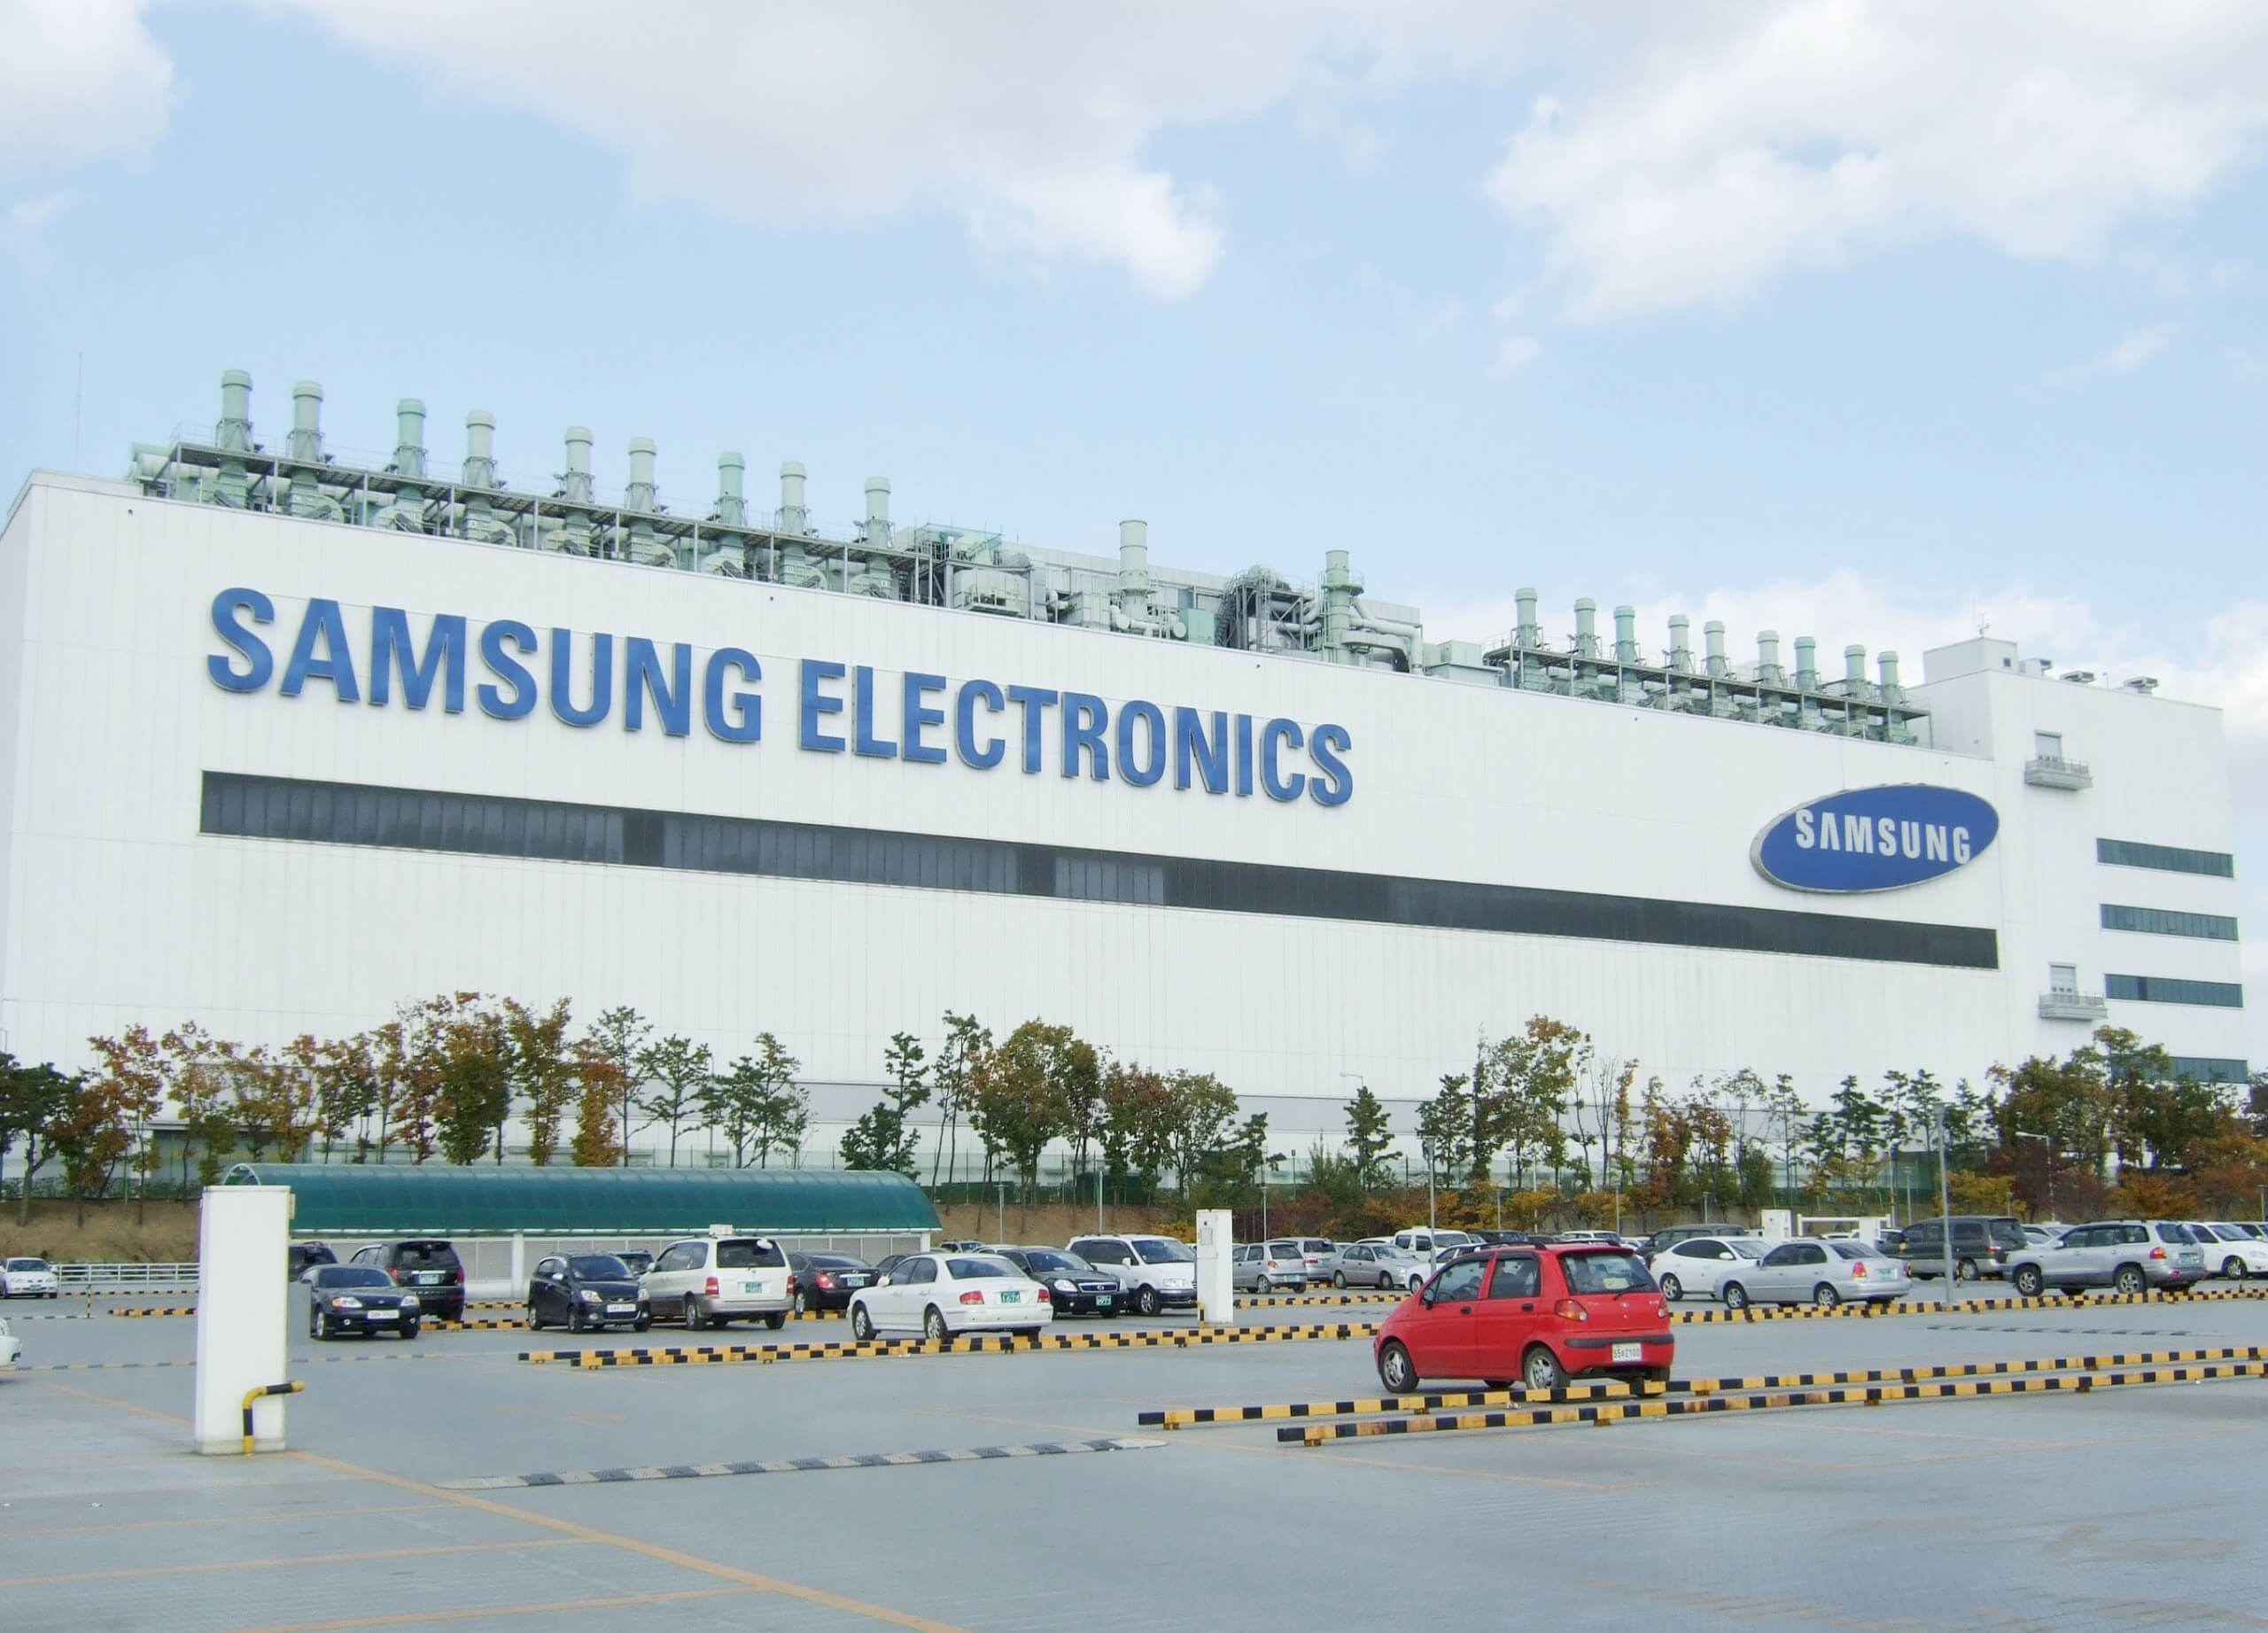 Samsung ahead of TSMC as world's leading wafer manufacturer